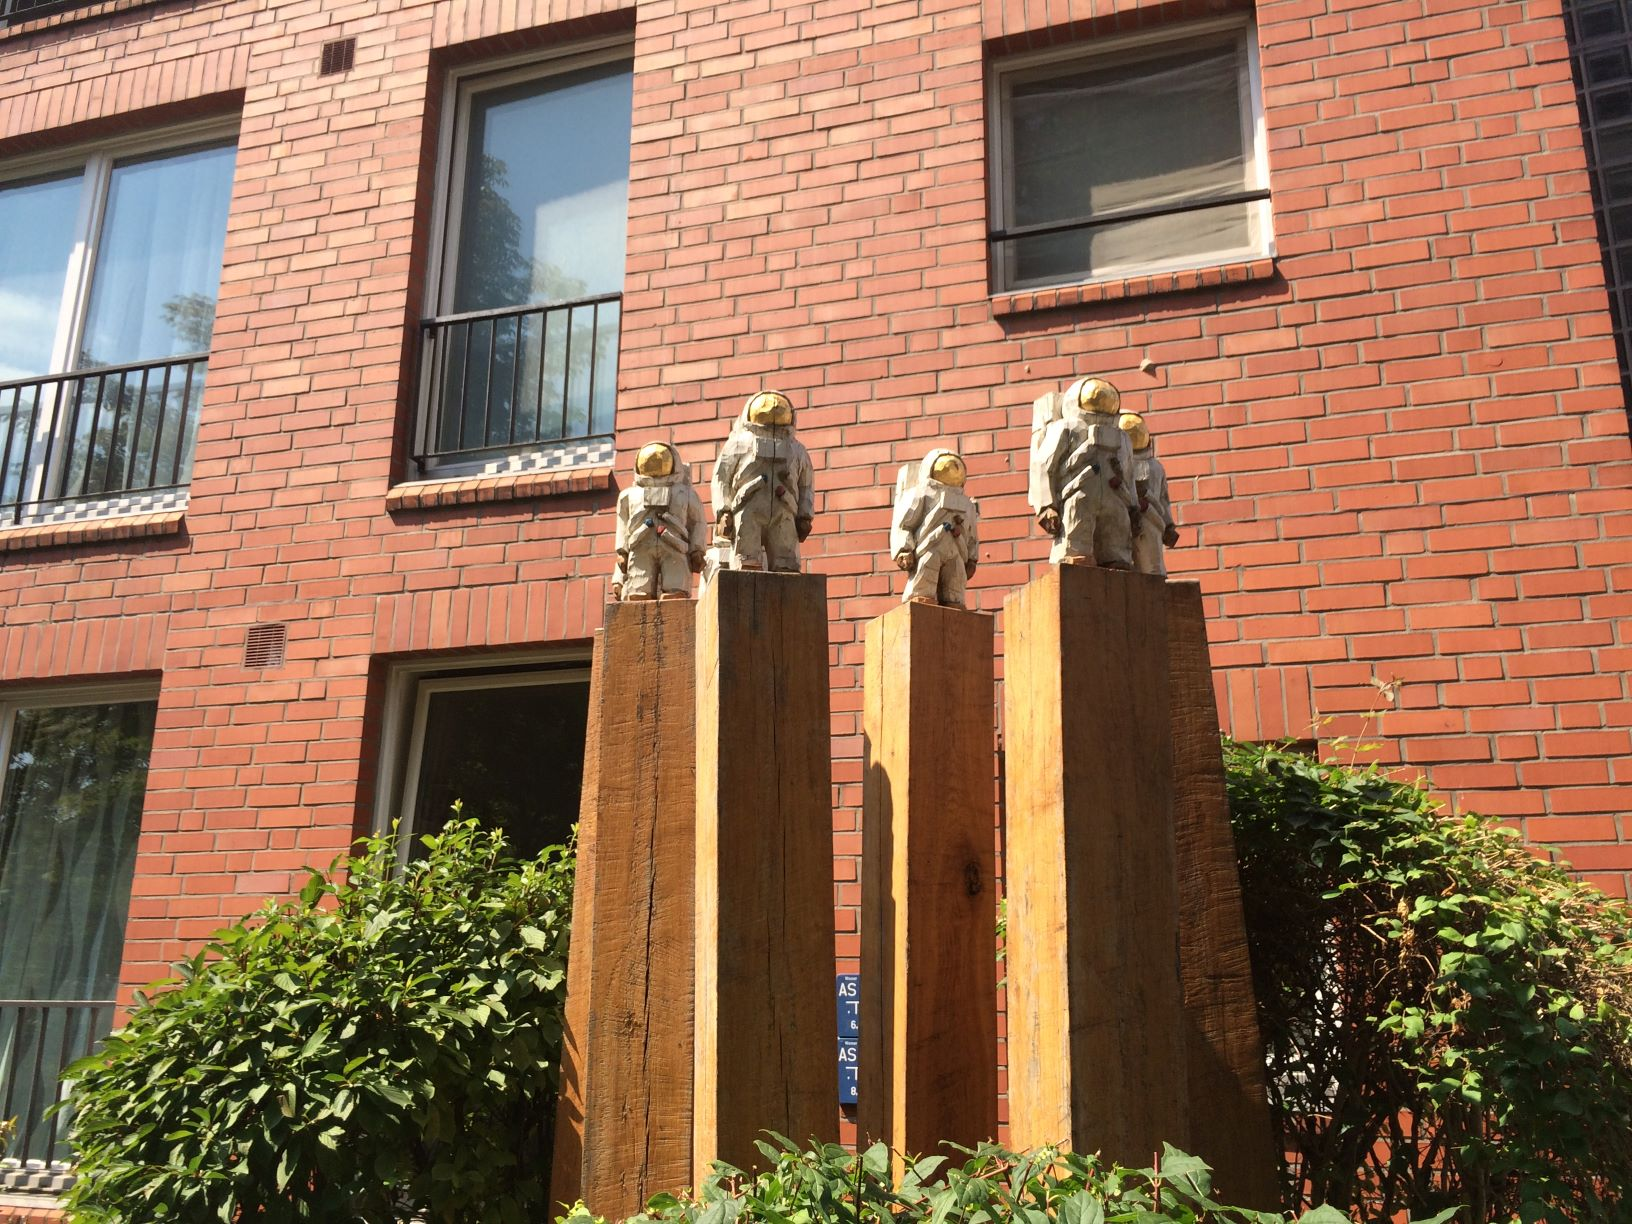 Art installation outside of the Berlinische Galerie -- 'Astronauts' by Albrecht Klink